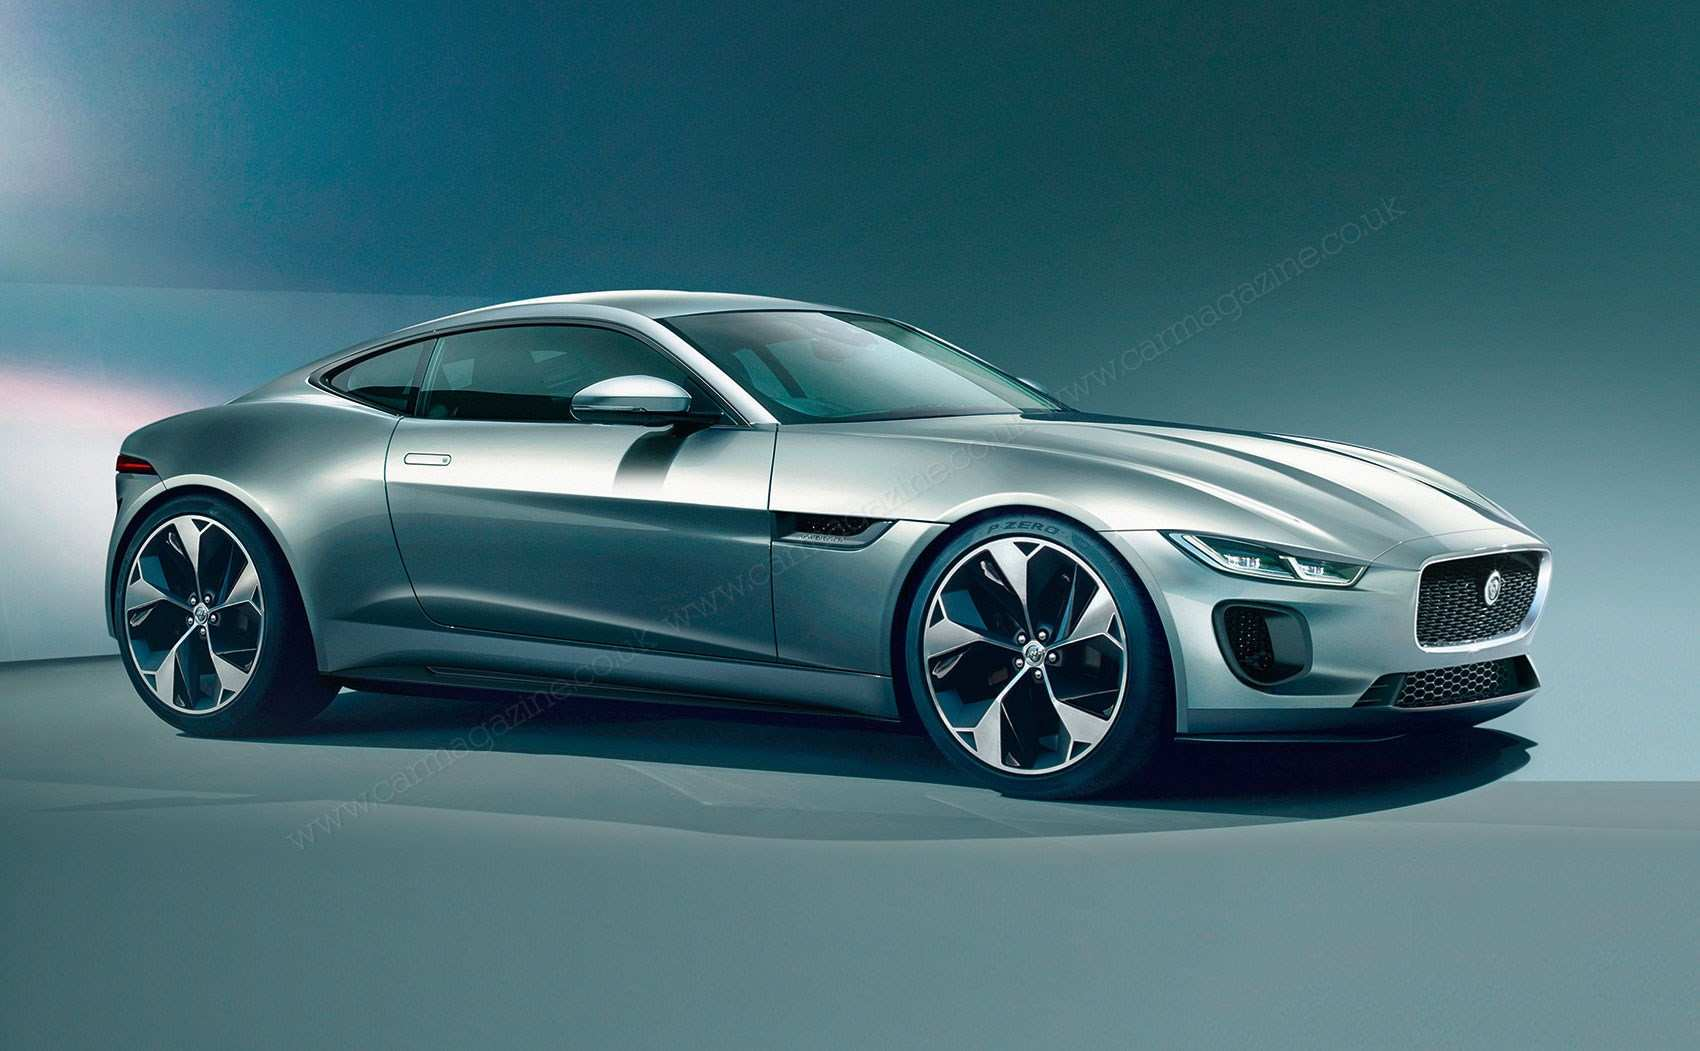 74 New Jaguar F Type 2020 New Concept Price for Jaguar F Type 2020 New Concept